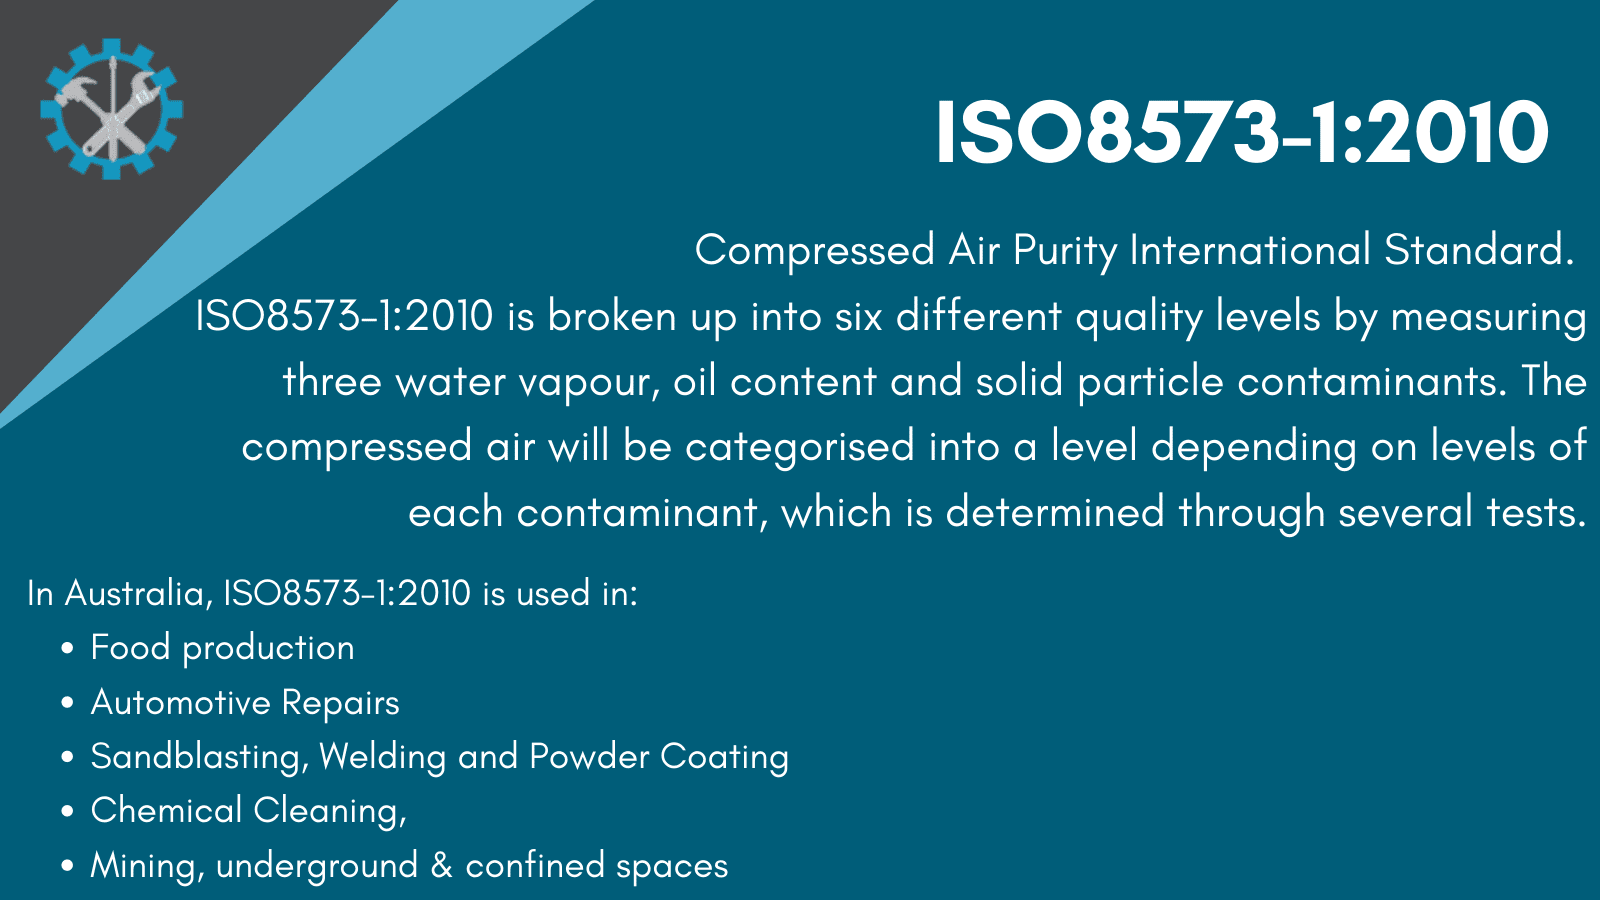 ISO8573-1:2010 Standard Infographic